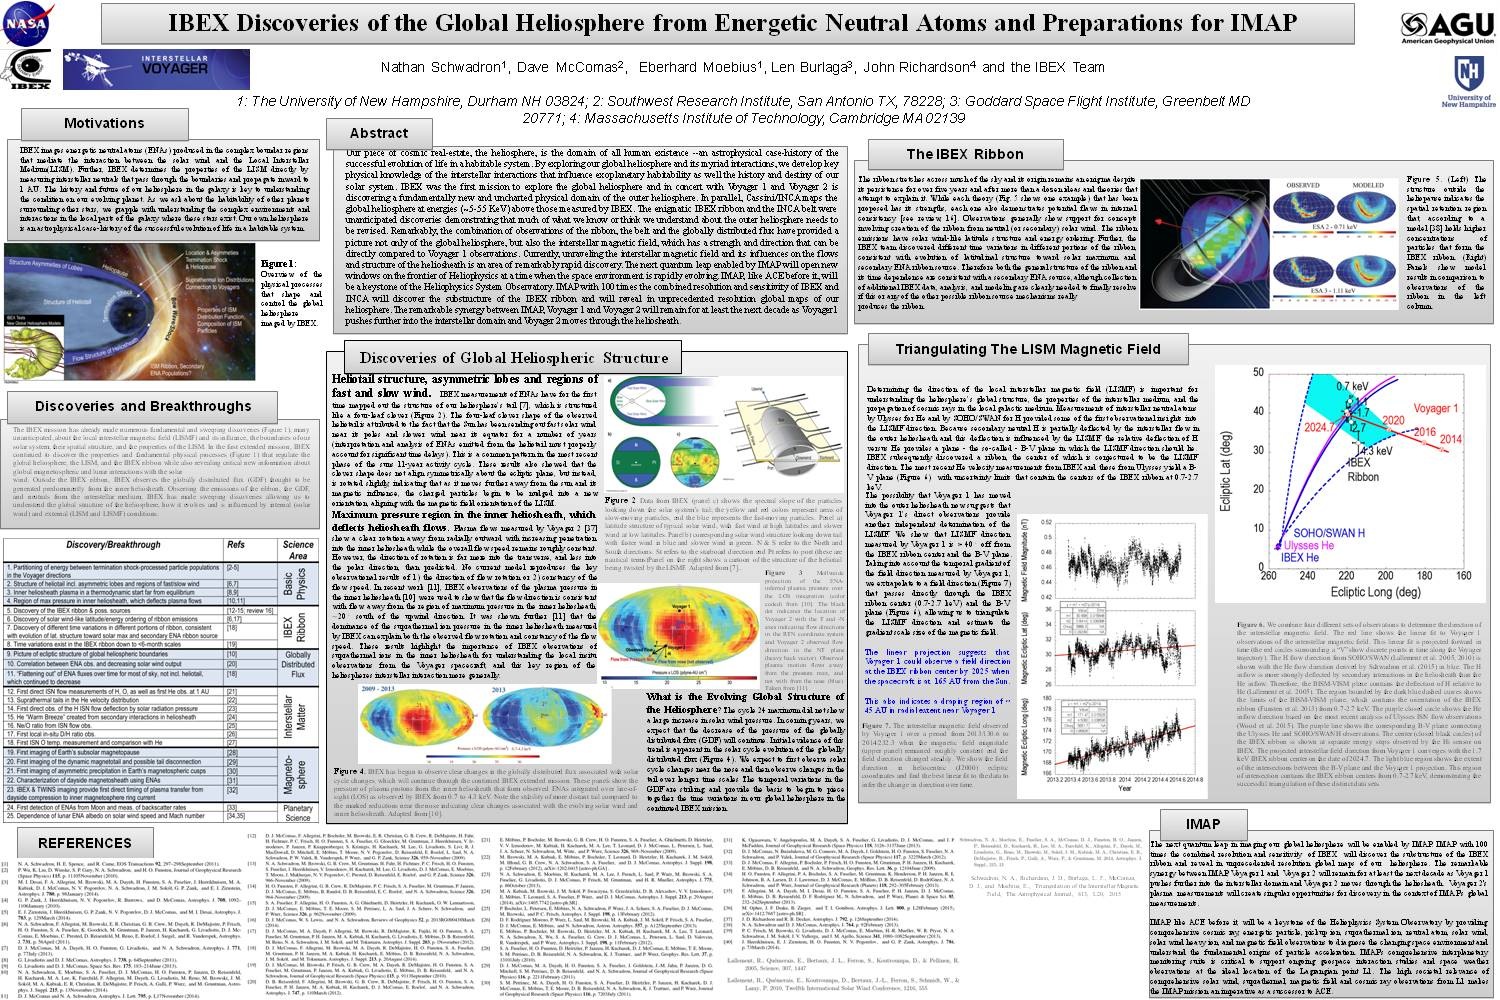 Ibex Discoveries Of The Global Heliosphere From Energetic Neutral Atoms And Preparations For Imap by nschwadron1